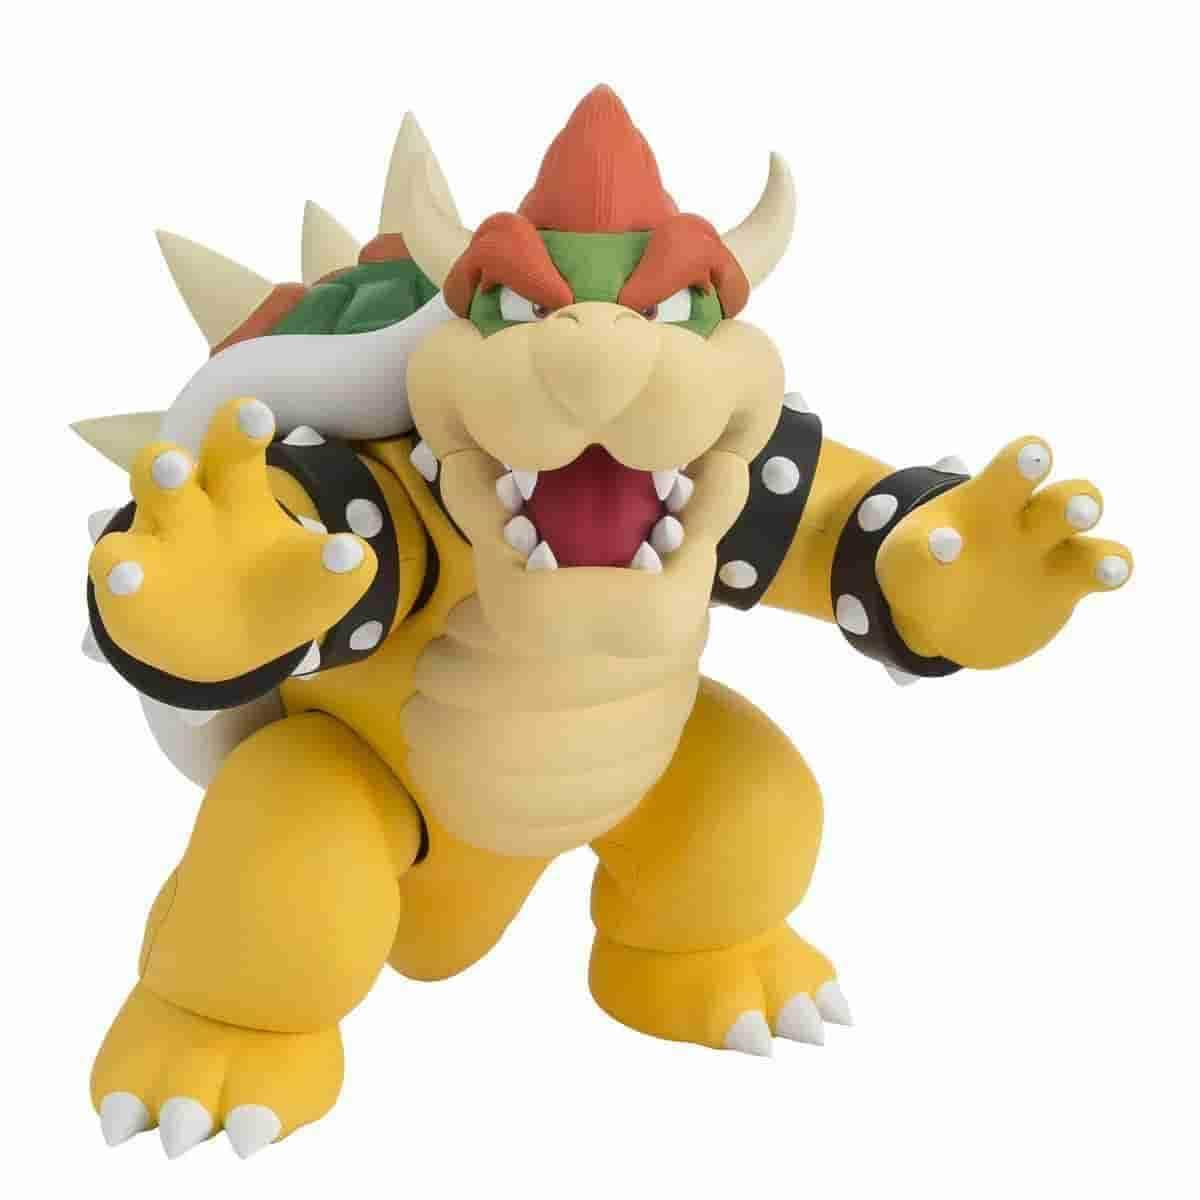 Bowser Super Mario Bros Action Figure by Bandai - Tamashii Nations S.H. Figuarts - IamRetro.com